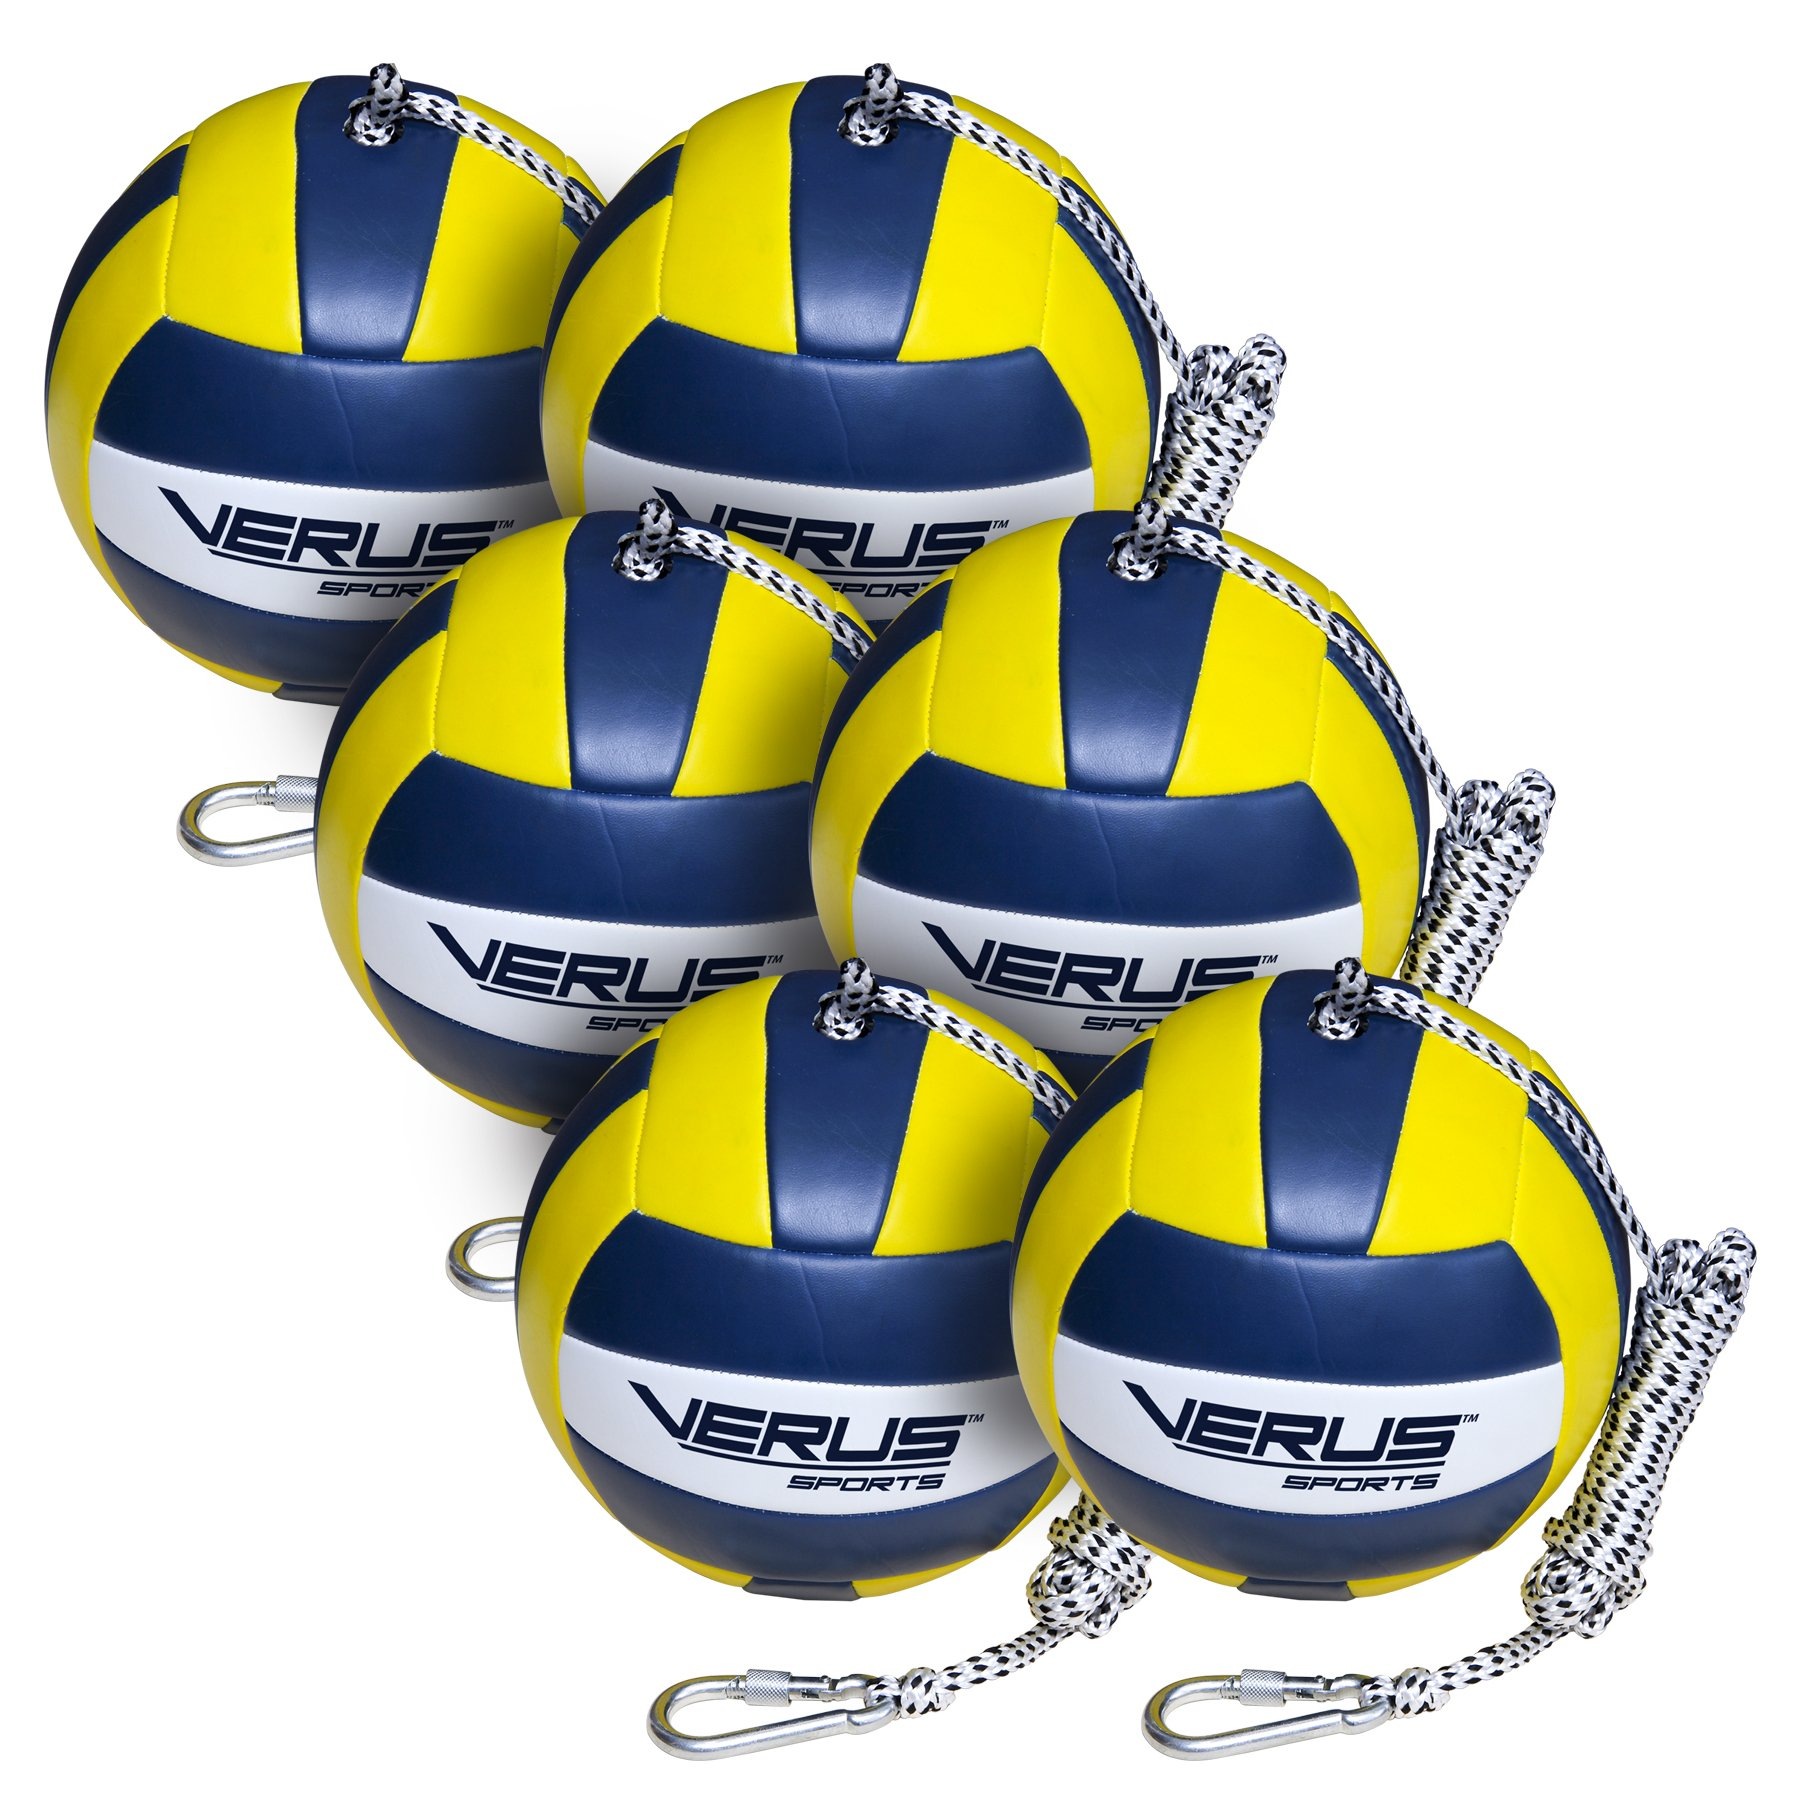 Verus Sports TO600-BALL-6 6 Replacement Tetherballs Ball with Heavy Duty Rope & Clip by Verus Sports